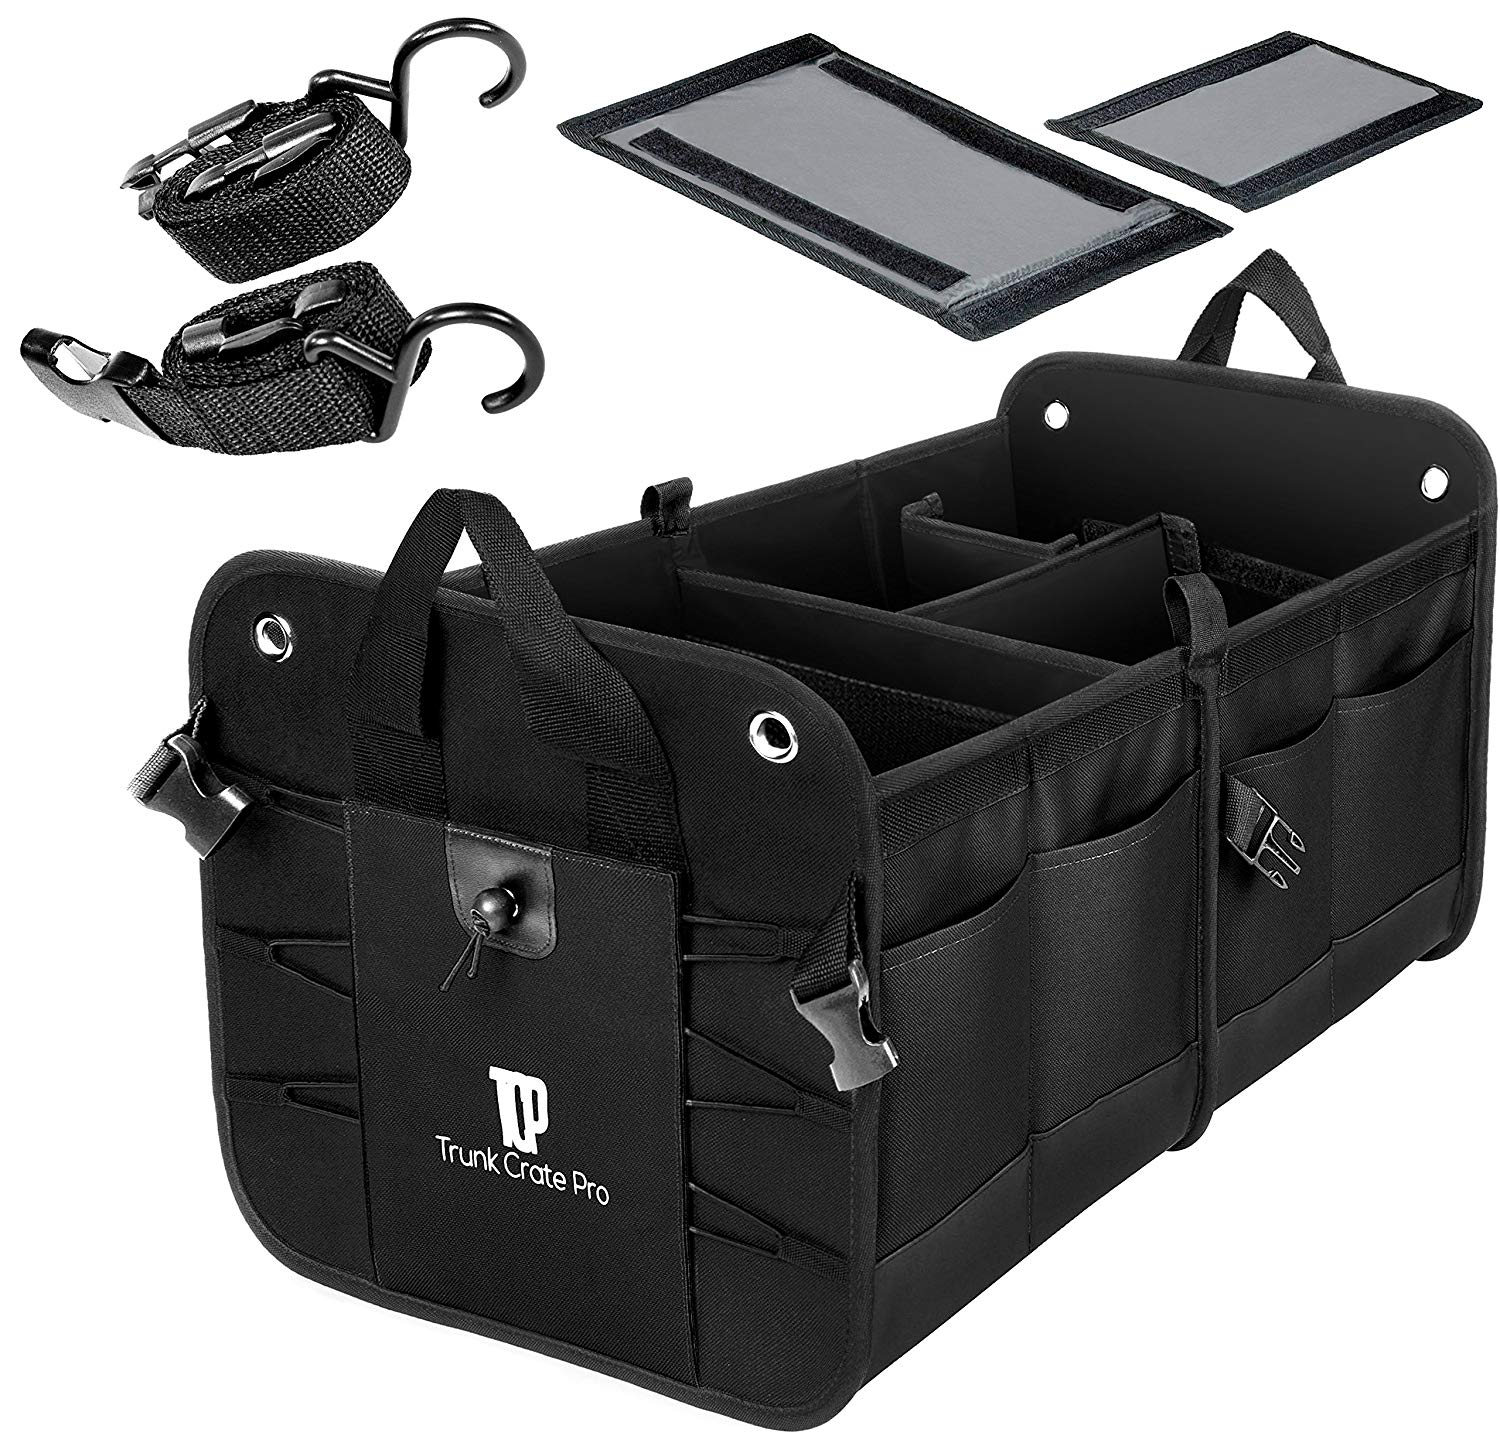 Trunkcratepro Collapsible Pro Portable Multi Compartments Trunk Organizer